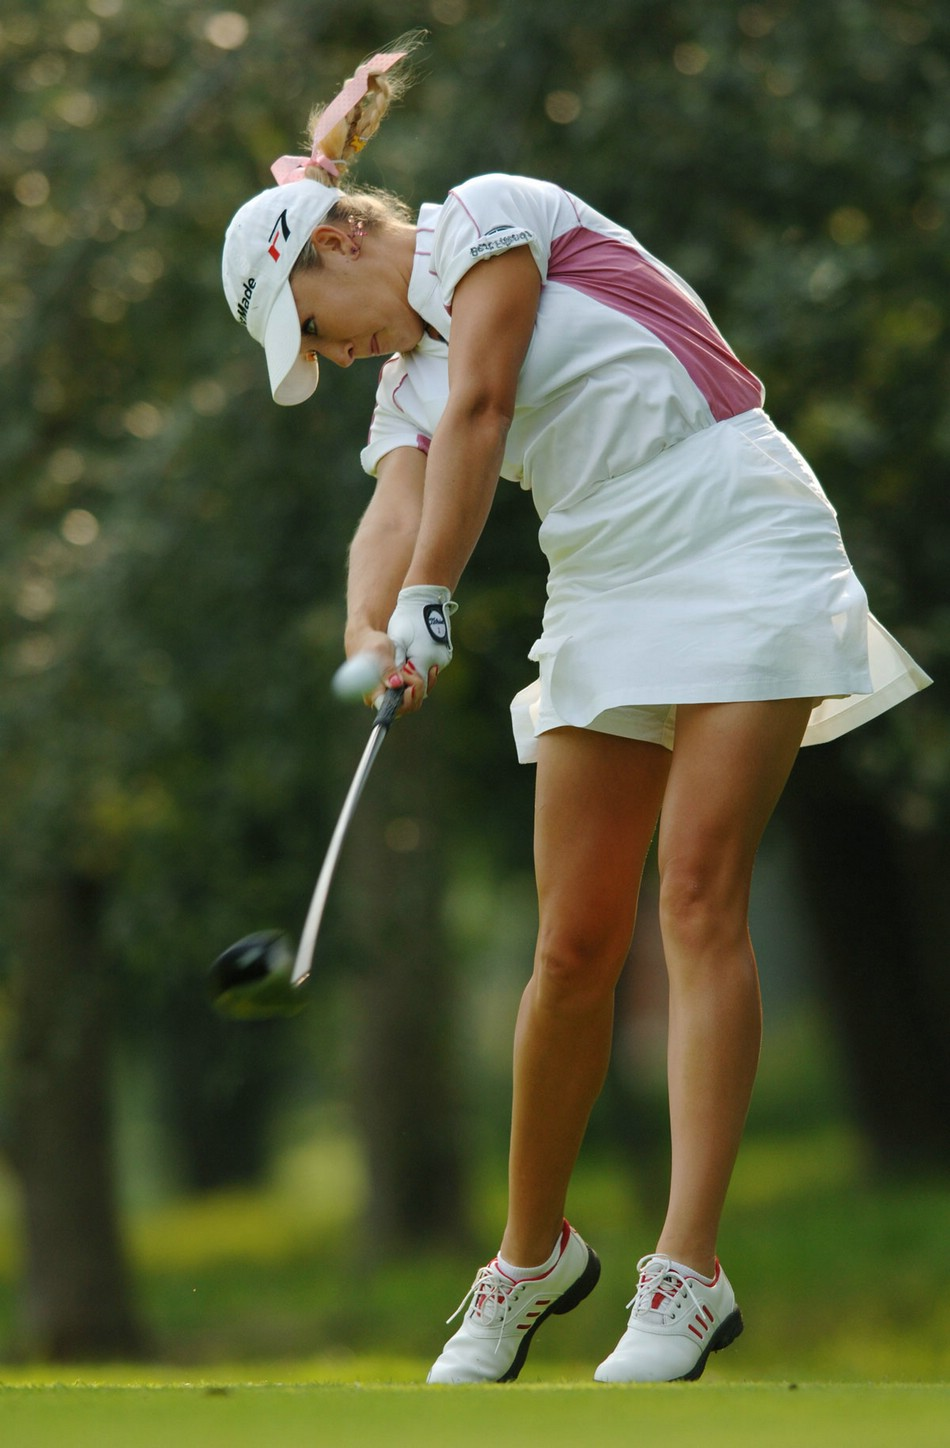 Natalie Gulbis Hot Golf Picture